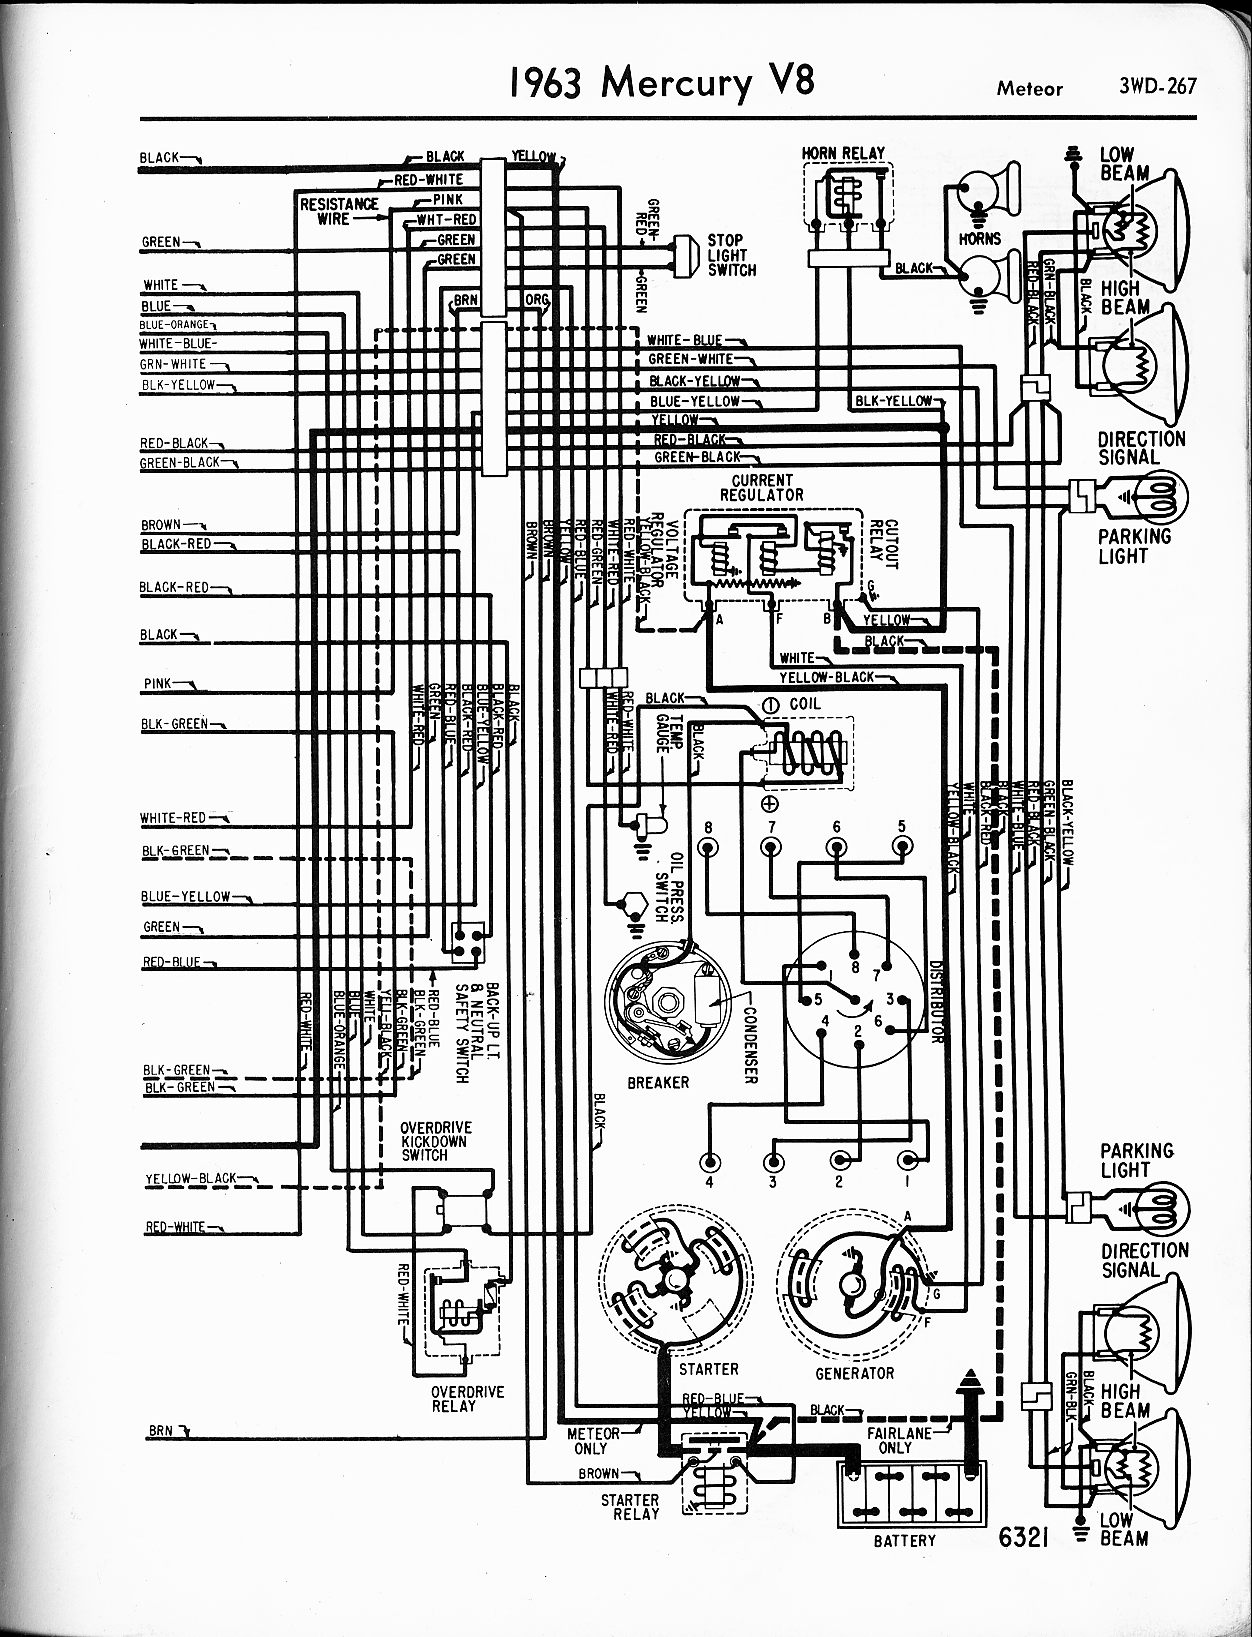 1998 Mercury Fuse Diagram Data Wiring Diagrams 1999 Mystique Box The Old Car Manual Project Rh Oldcarmanualproject Com Tracer